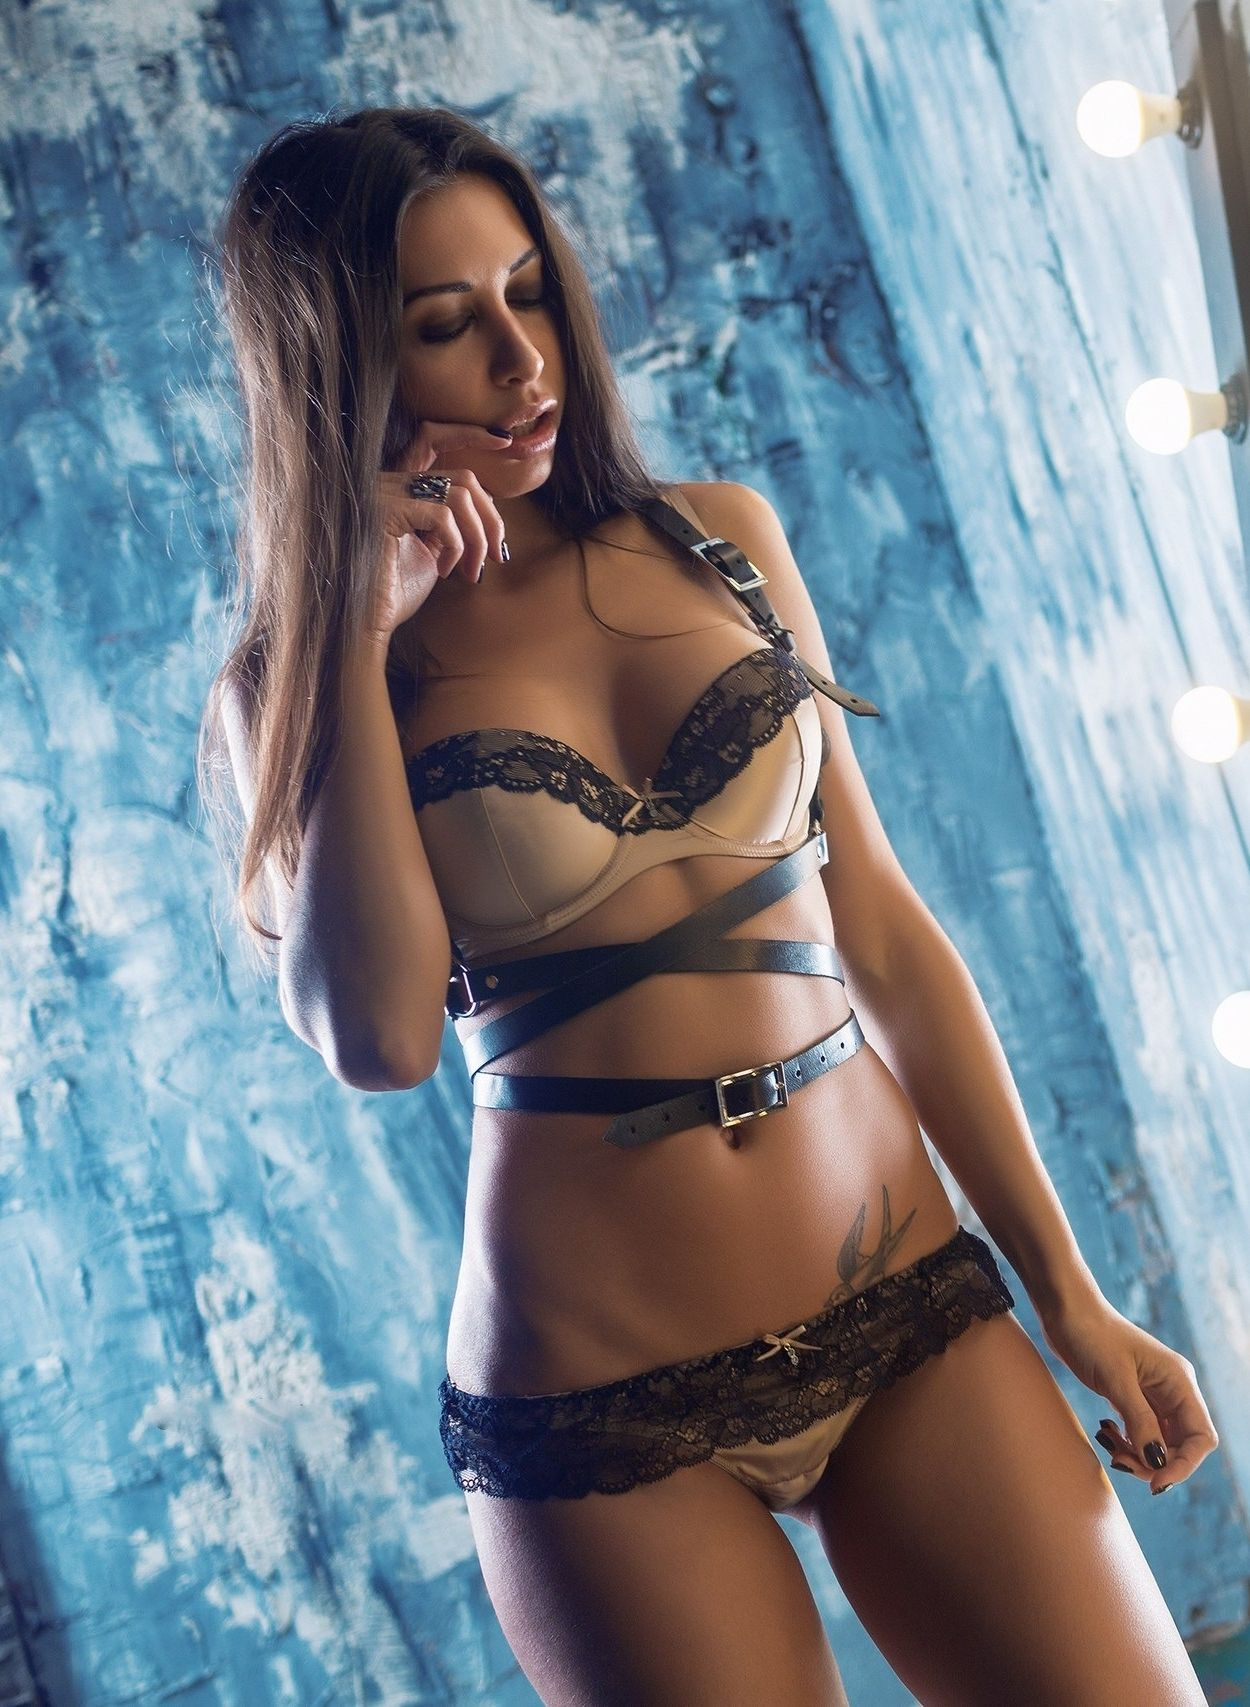 Hot babes in lingerie tumblr